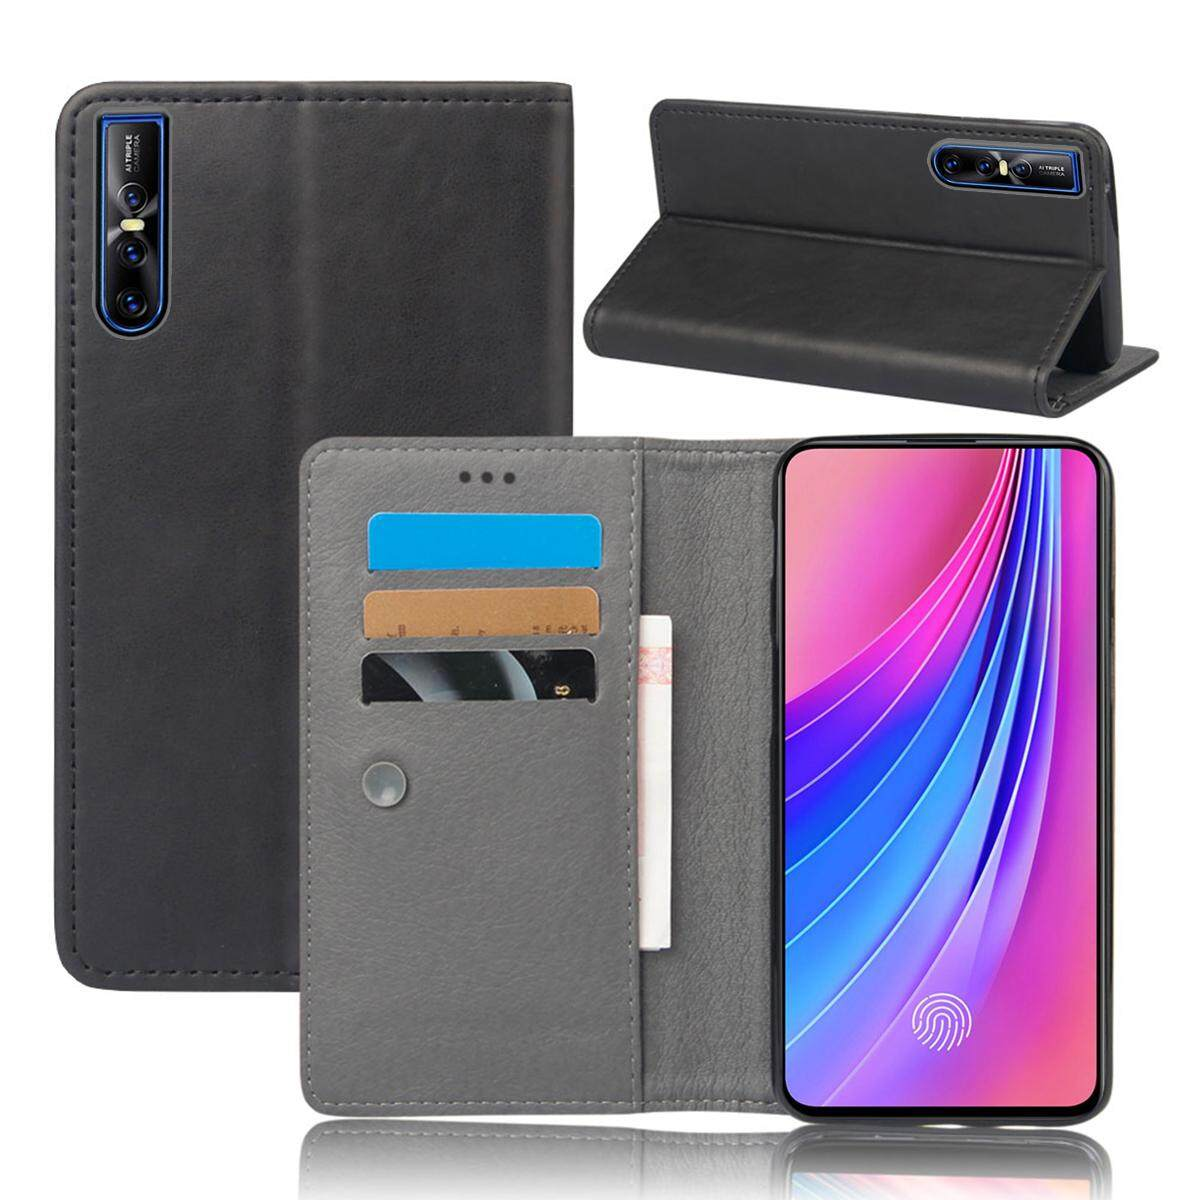 Moonmini Case for Vivo V15 Pro Case PU Leather Slim Fit Magnetic Flip Stand Protective Cover